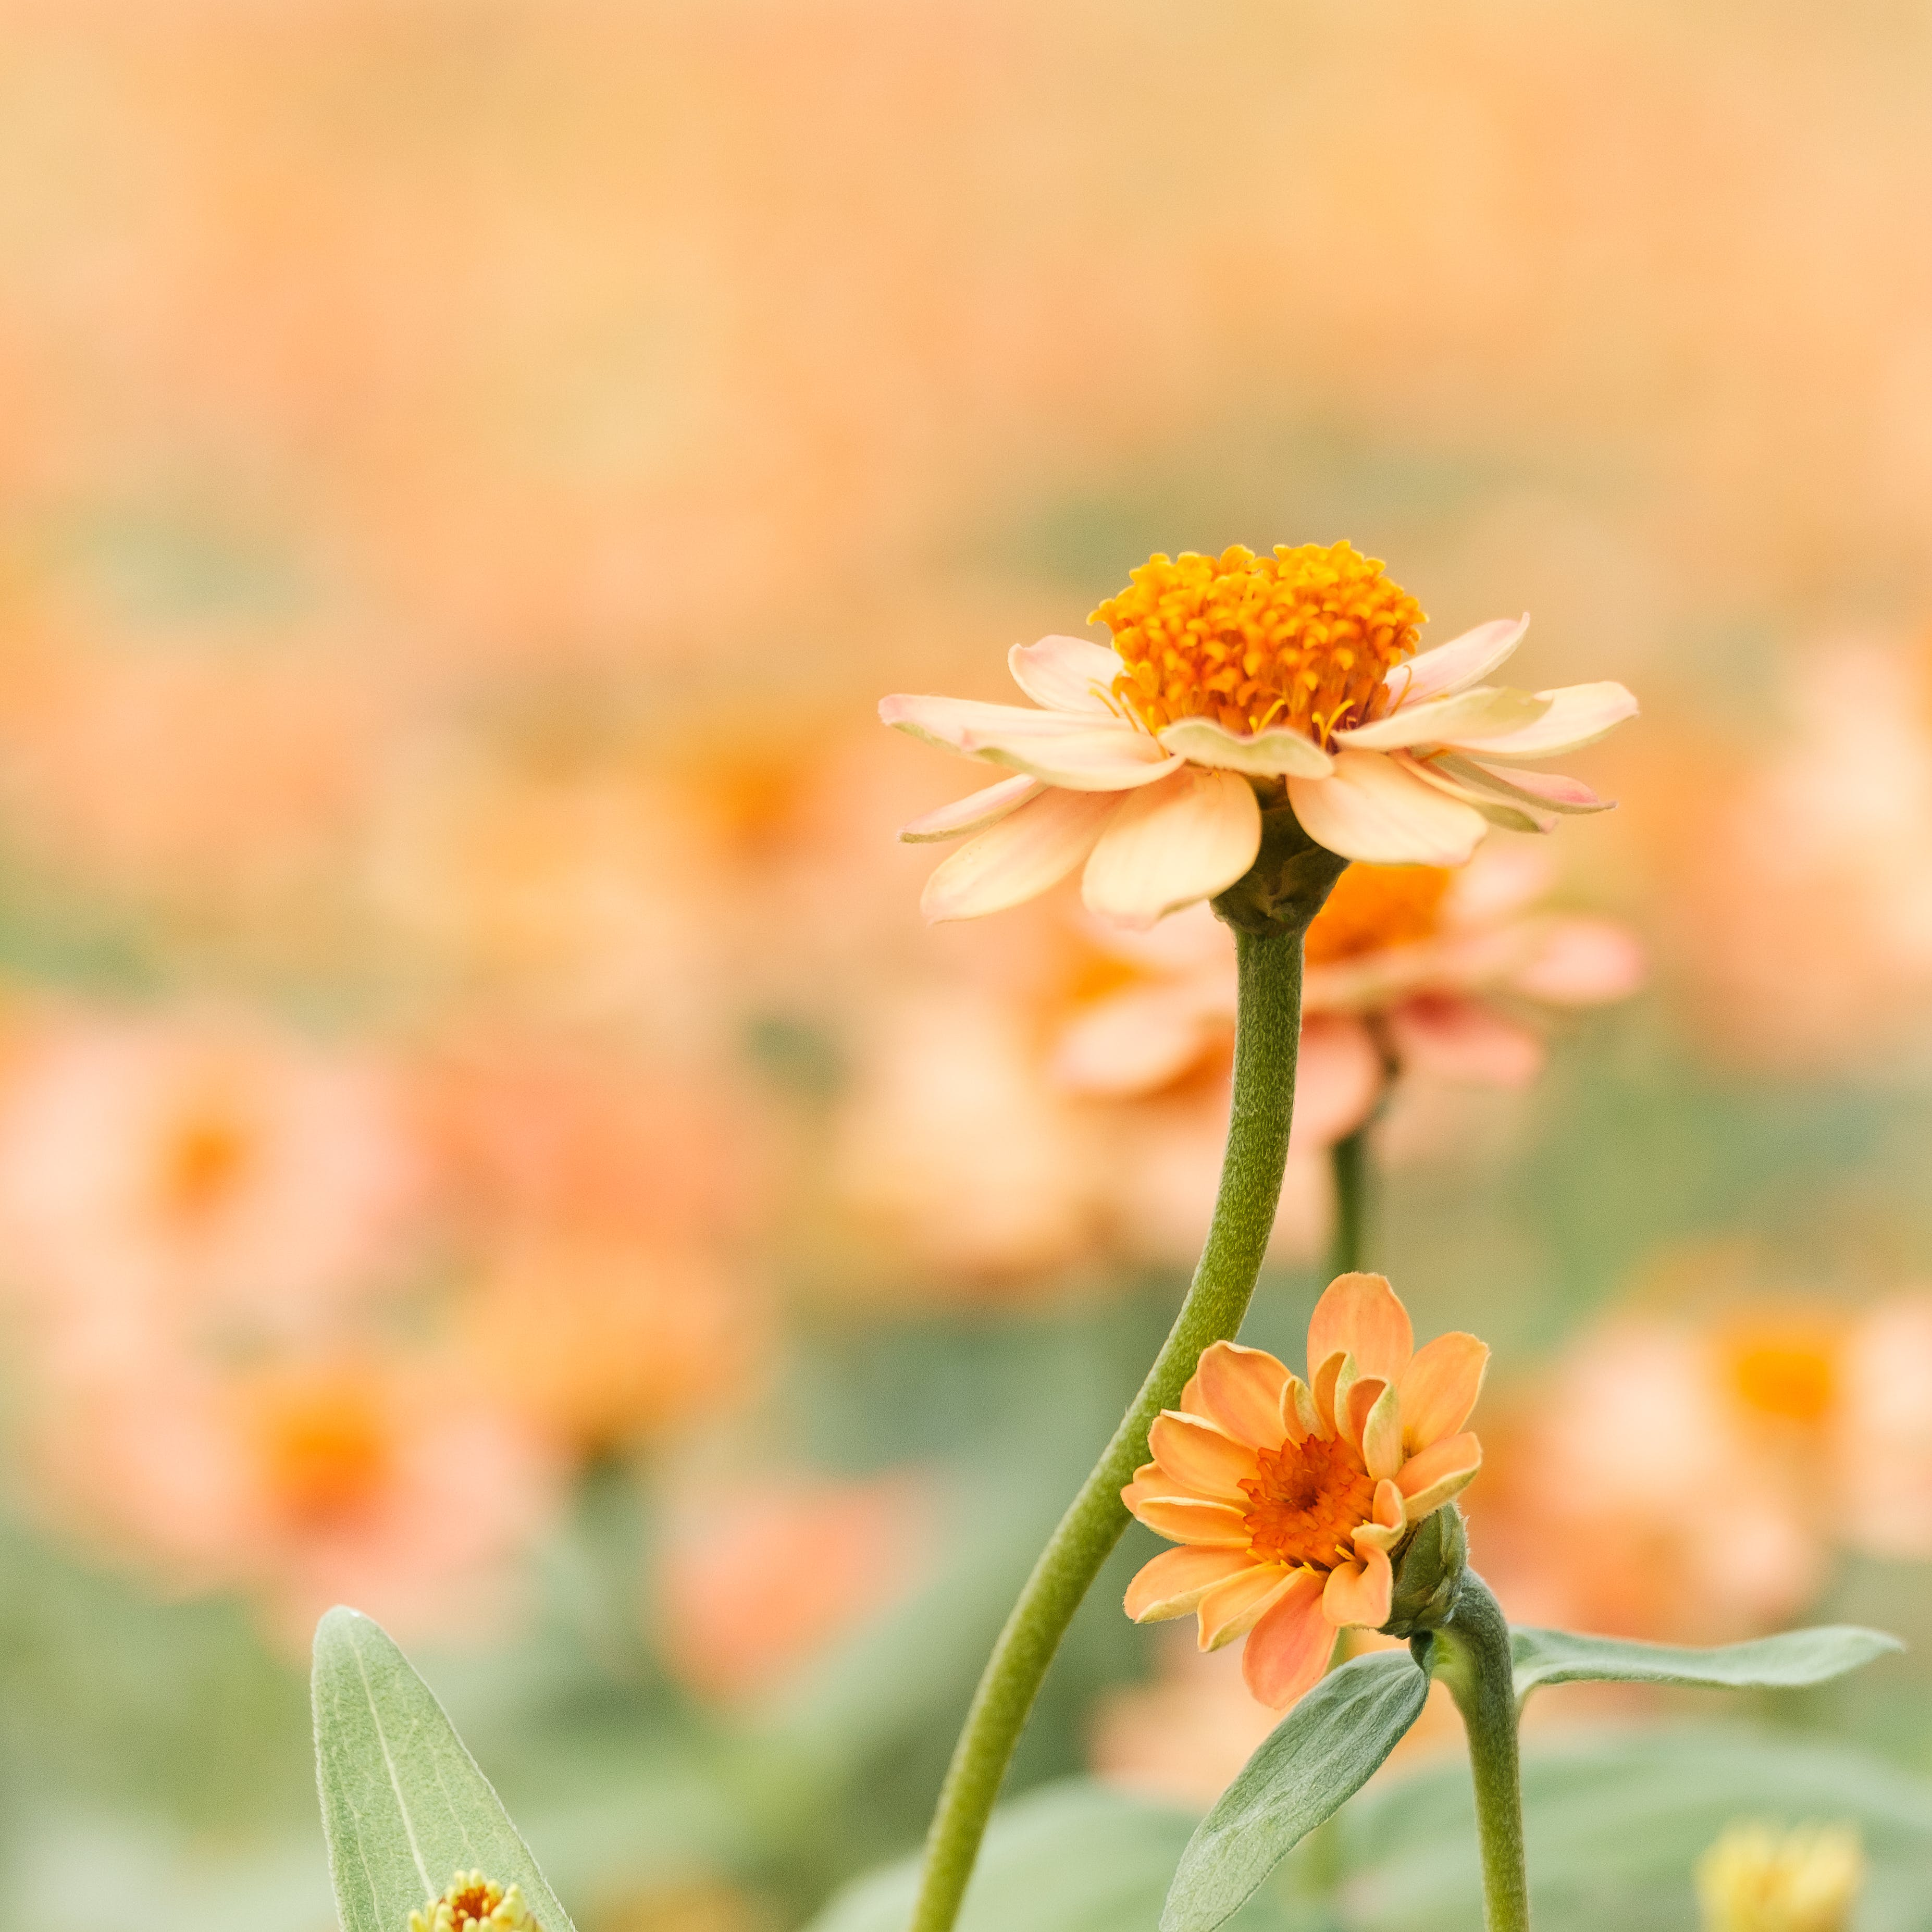 Shallow Focus Photography of White Daisy